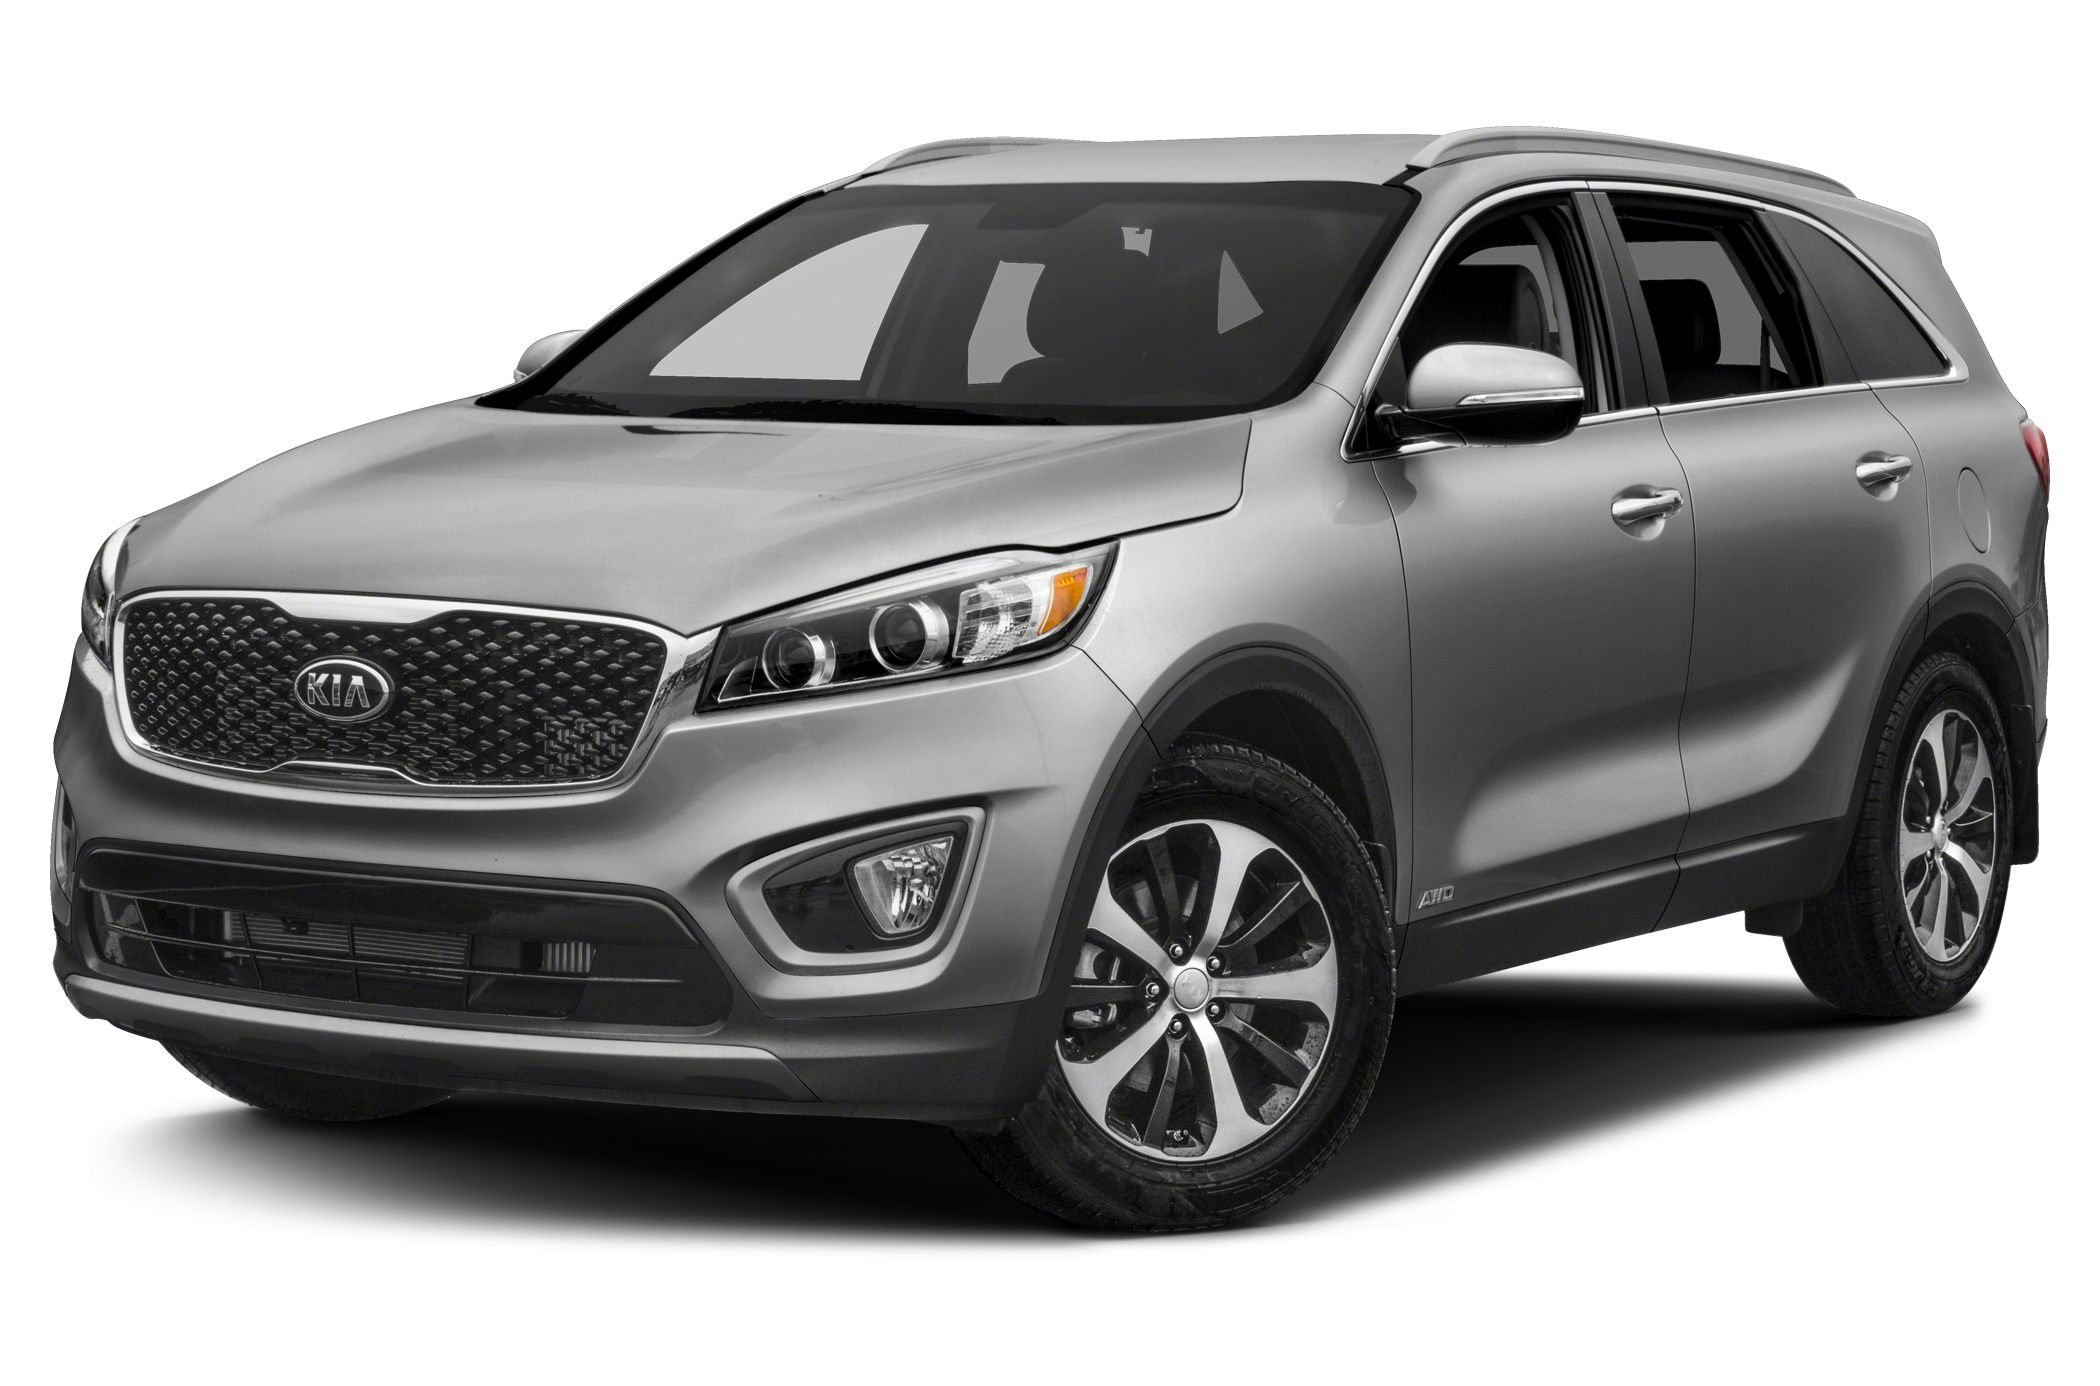 2016 Kia Sorento 33 EX Drivers only for this stunning and seductive certified 2016 Kia Sorento EX